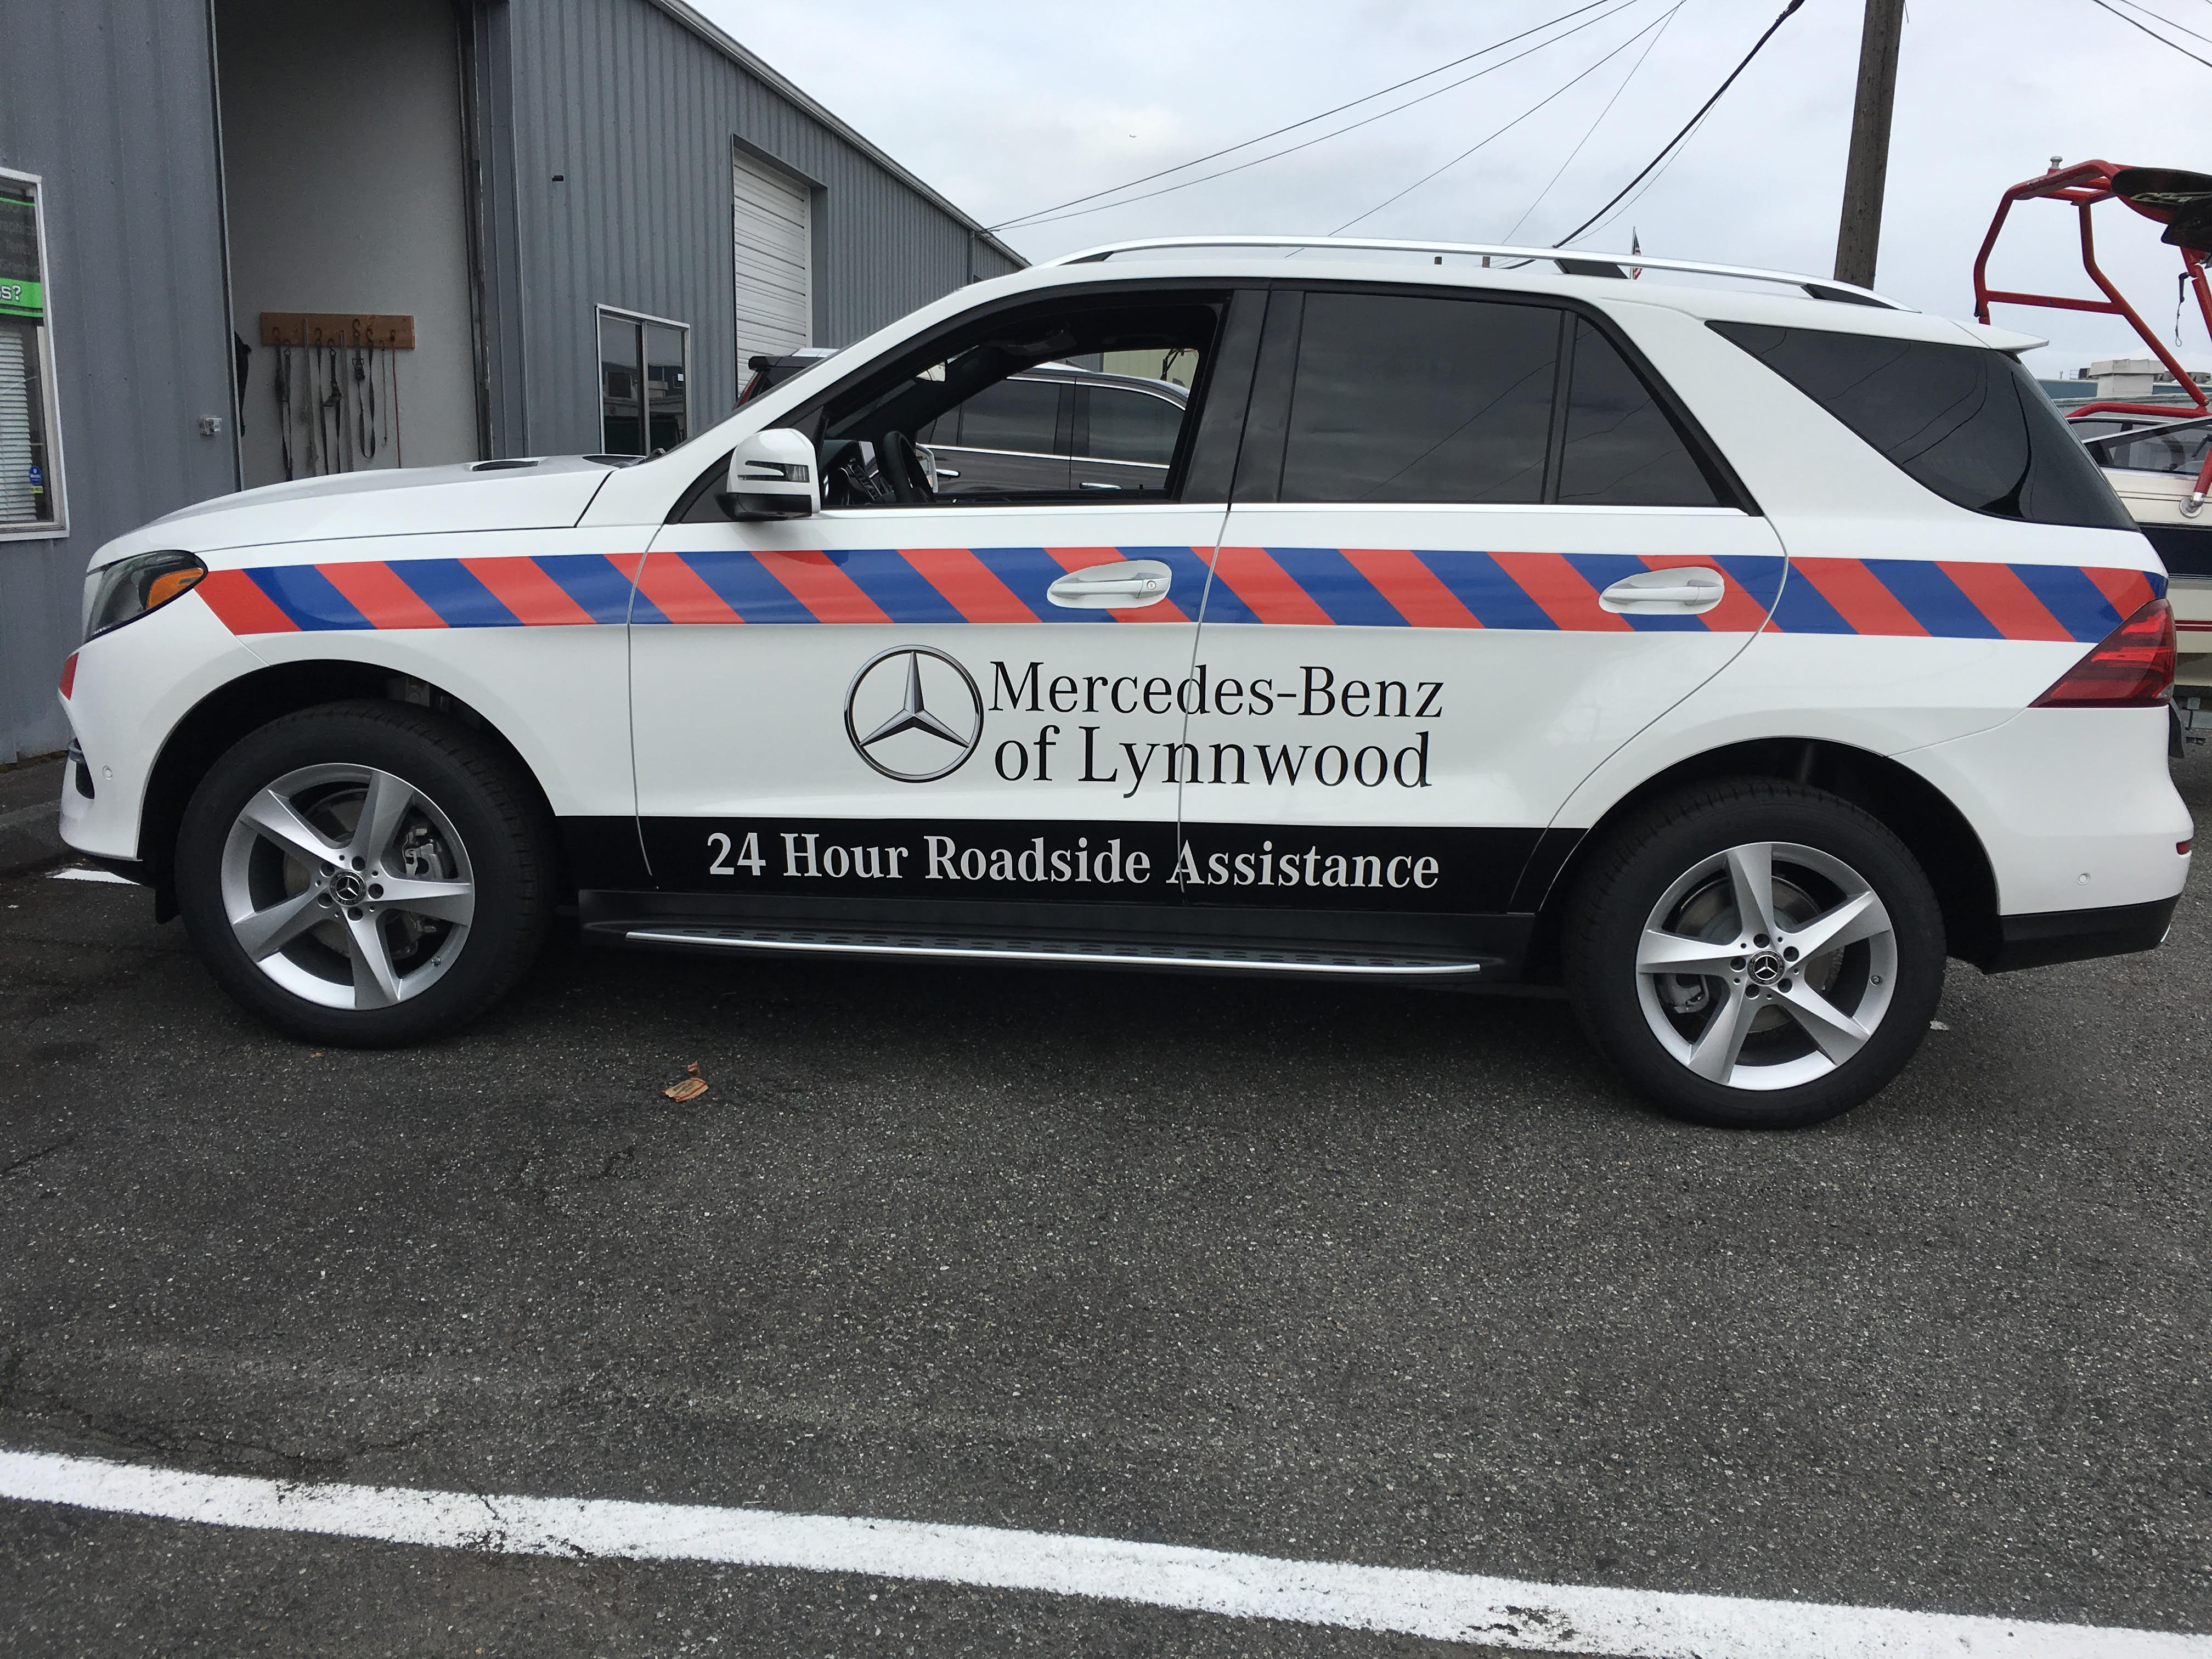 Reflective graphics for Mercedes-Benz of Lynnwood